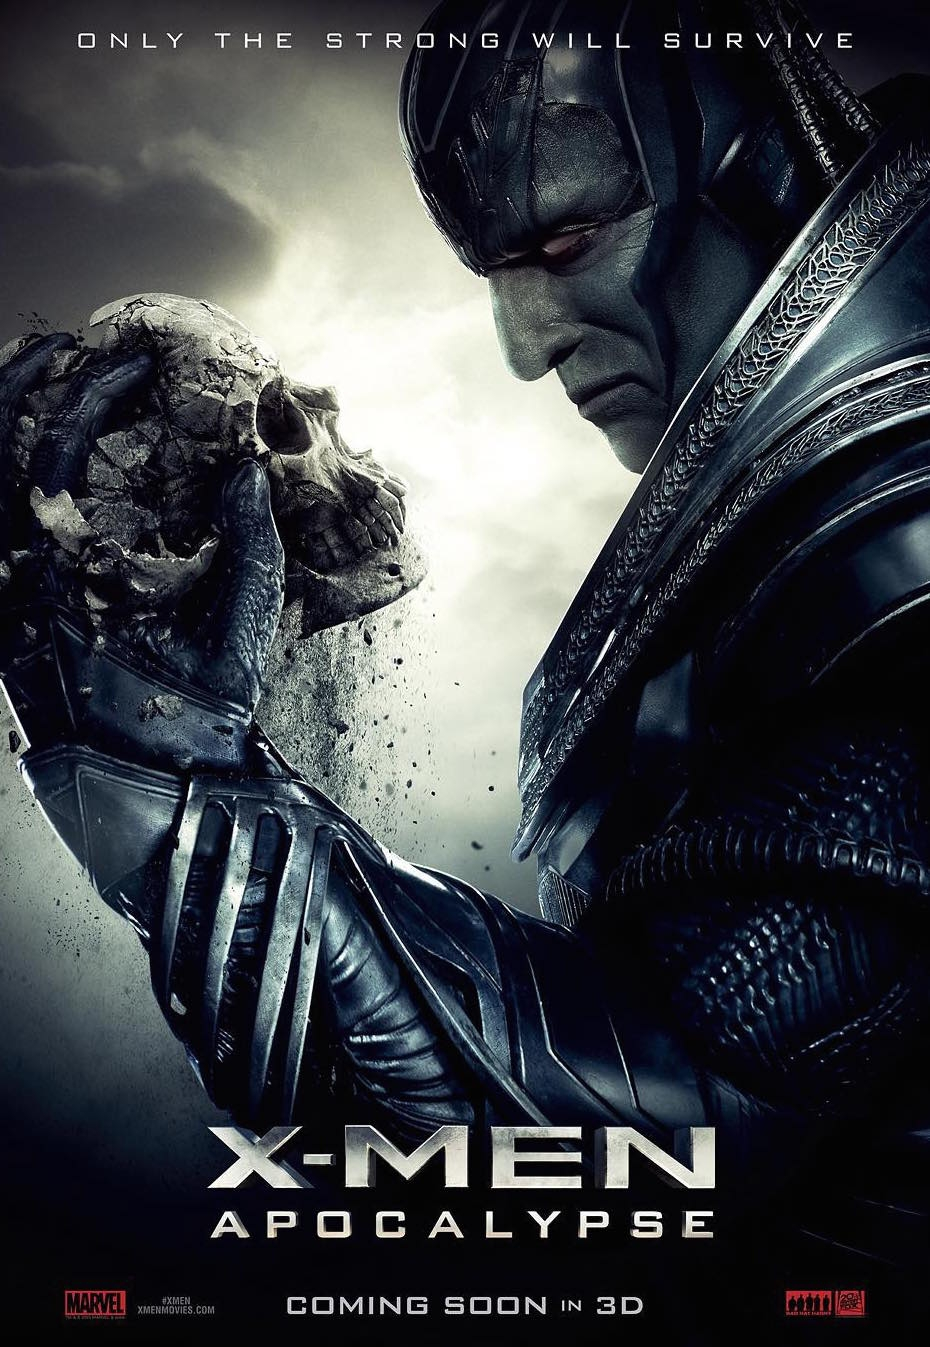 8d40ea561af1 The sequel to X-Men  Days of Future Past and the ninth installment in the  X-Men film series